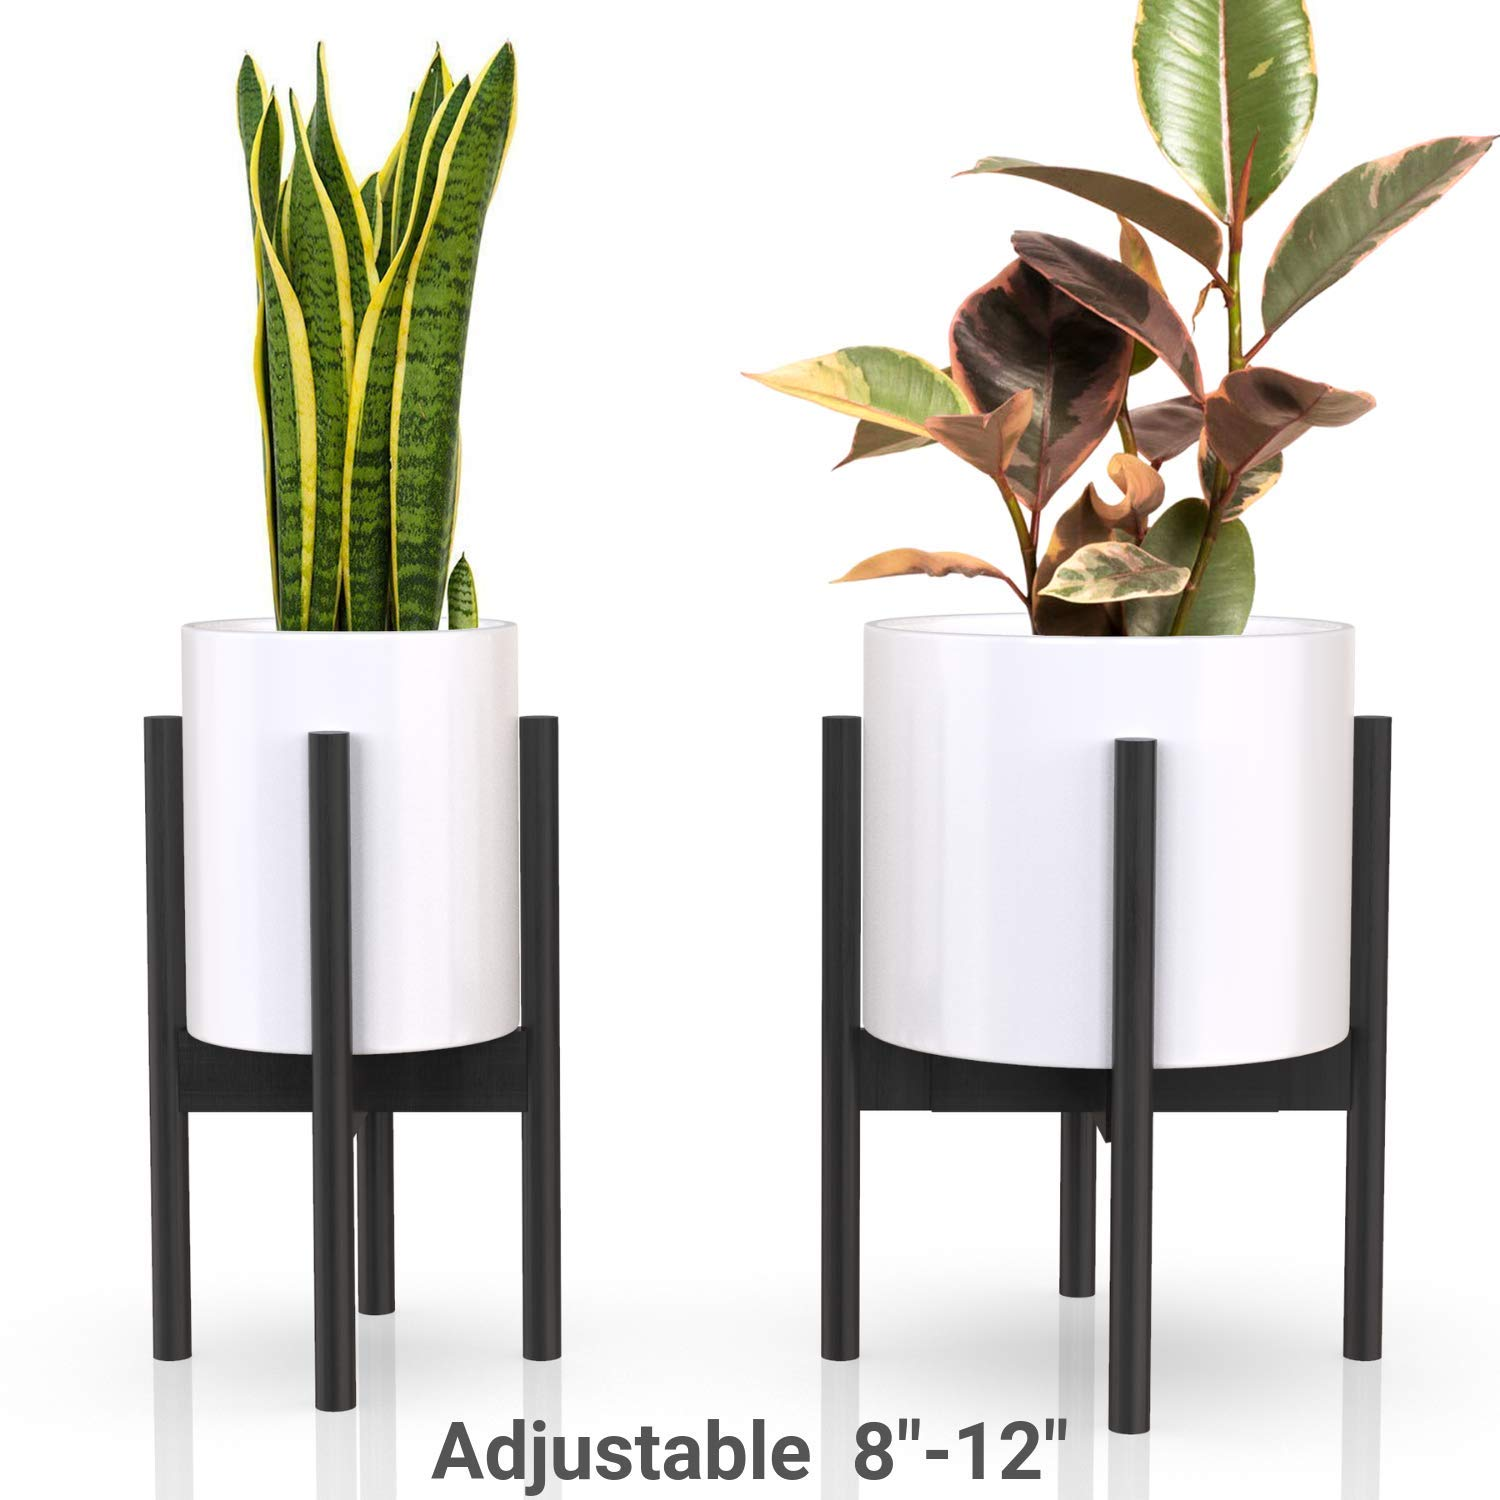 declutterd Plant Stand Adjustable Mid Century Indoor Plant Holder for House Plants, Home Decor - Wood - Fits Planter 8 to 12 Inches - Excludes Plant Pot (Black 1-Pack) by declutterd